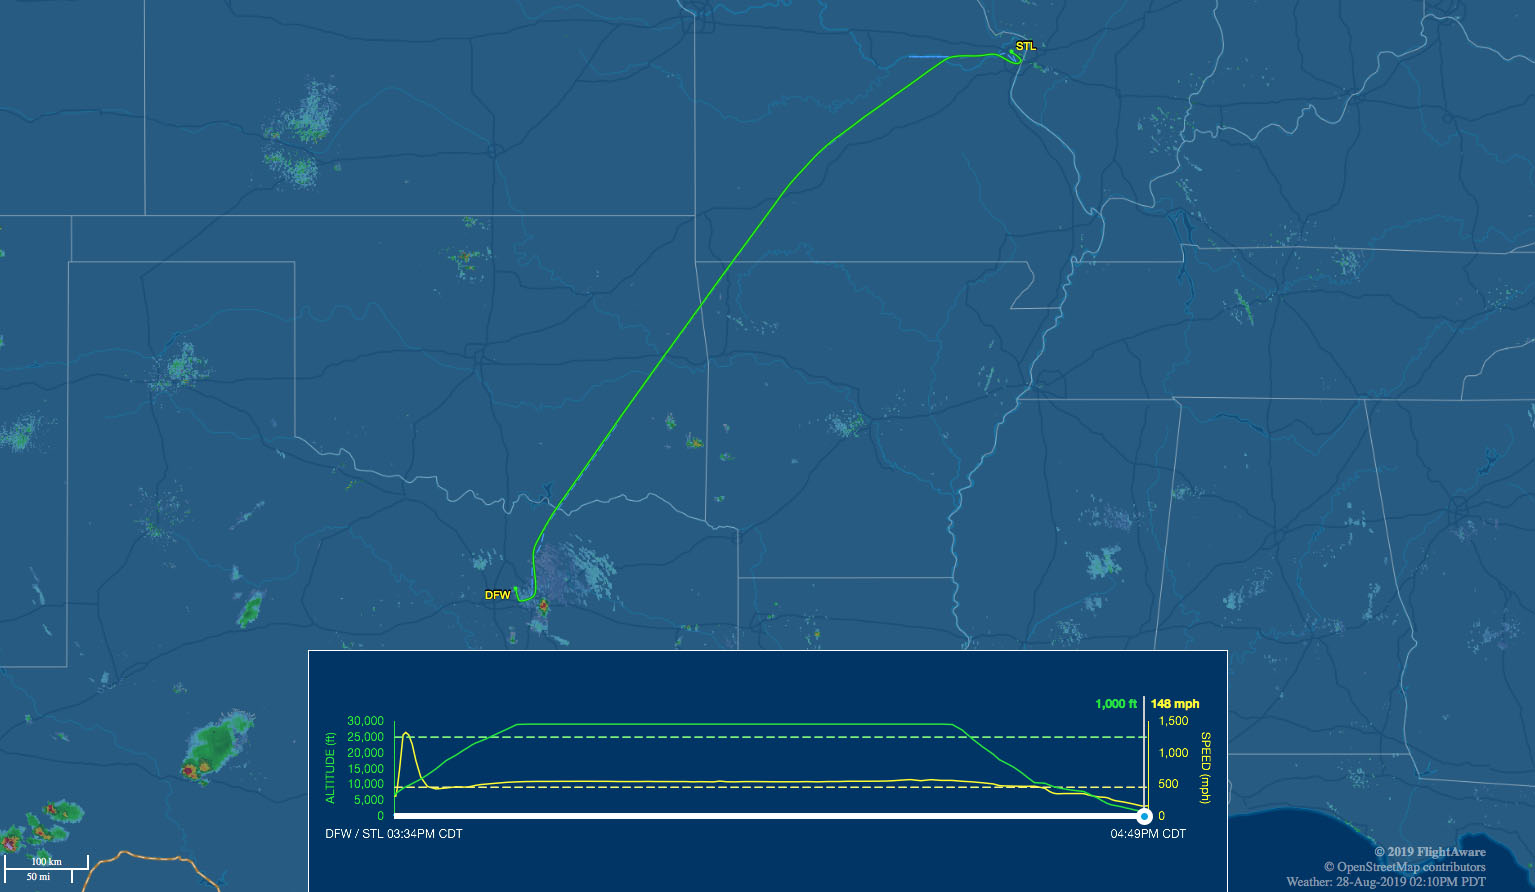 dfw-stl flight track